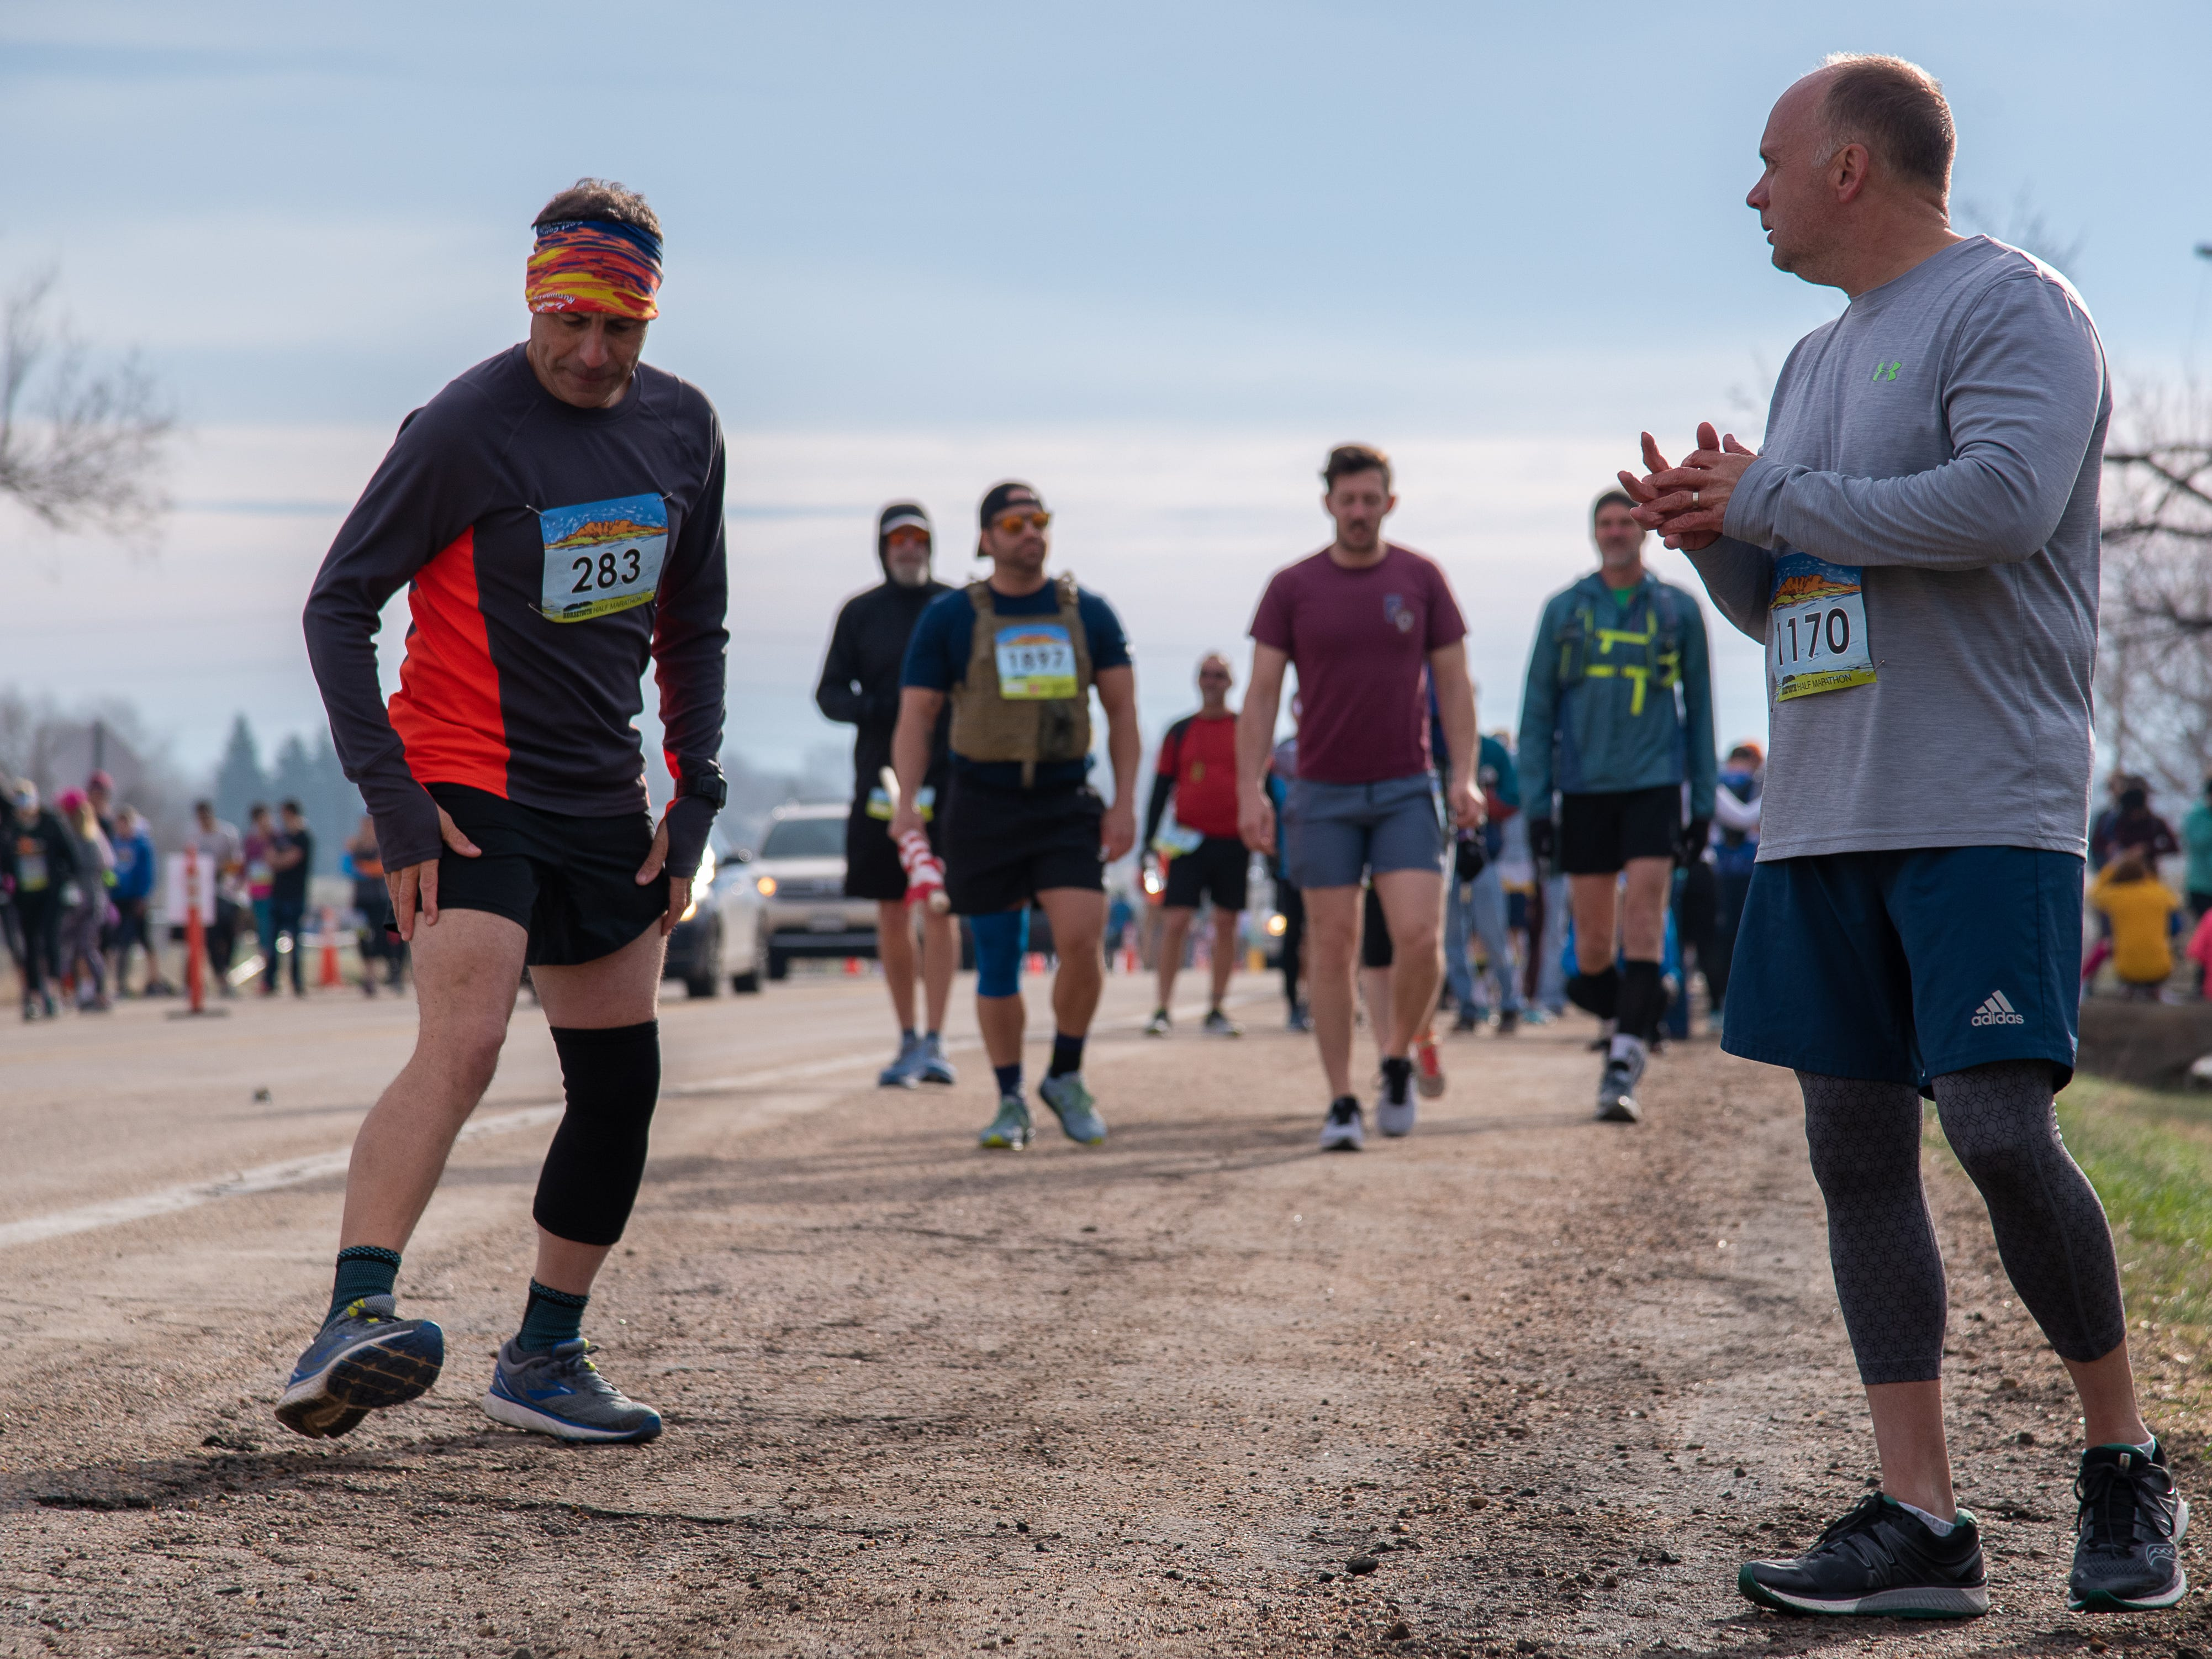 Participants limber up before the start of the Horsetooth Half Marathon on Sunday, April 14, 2019, in Fort Collins, Colo.